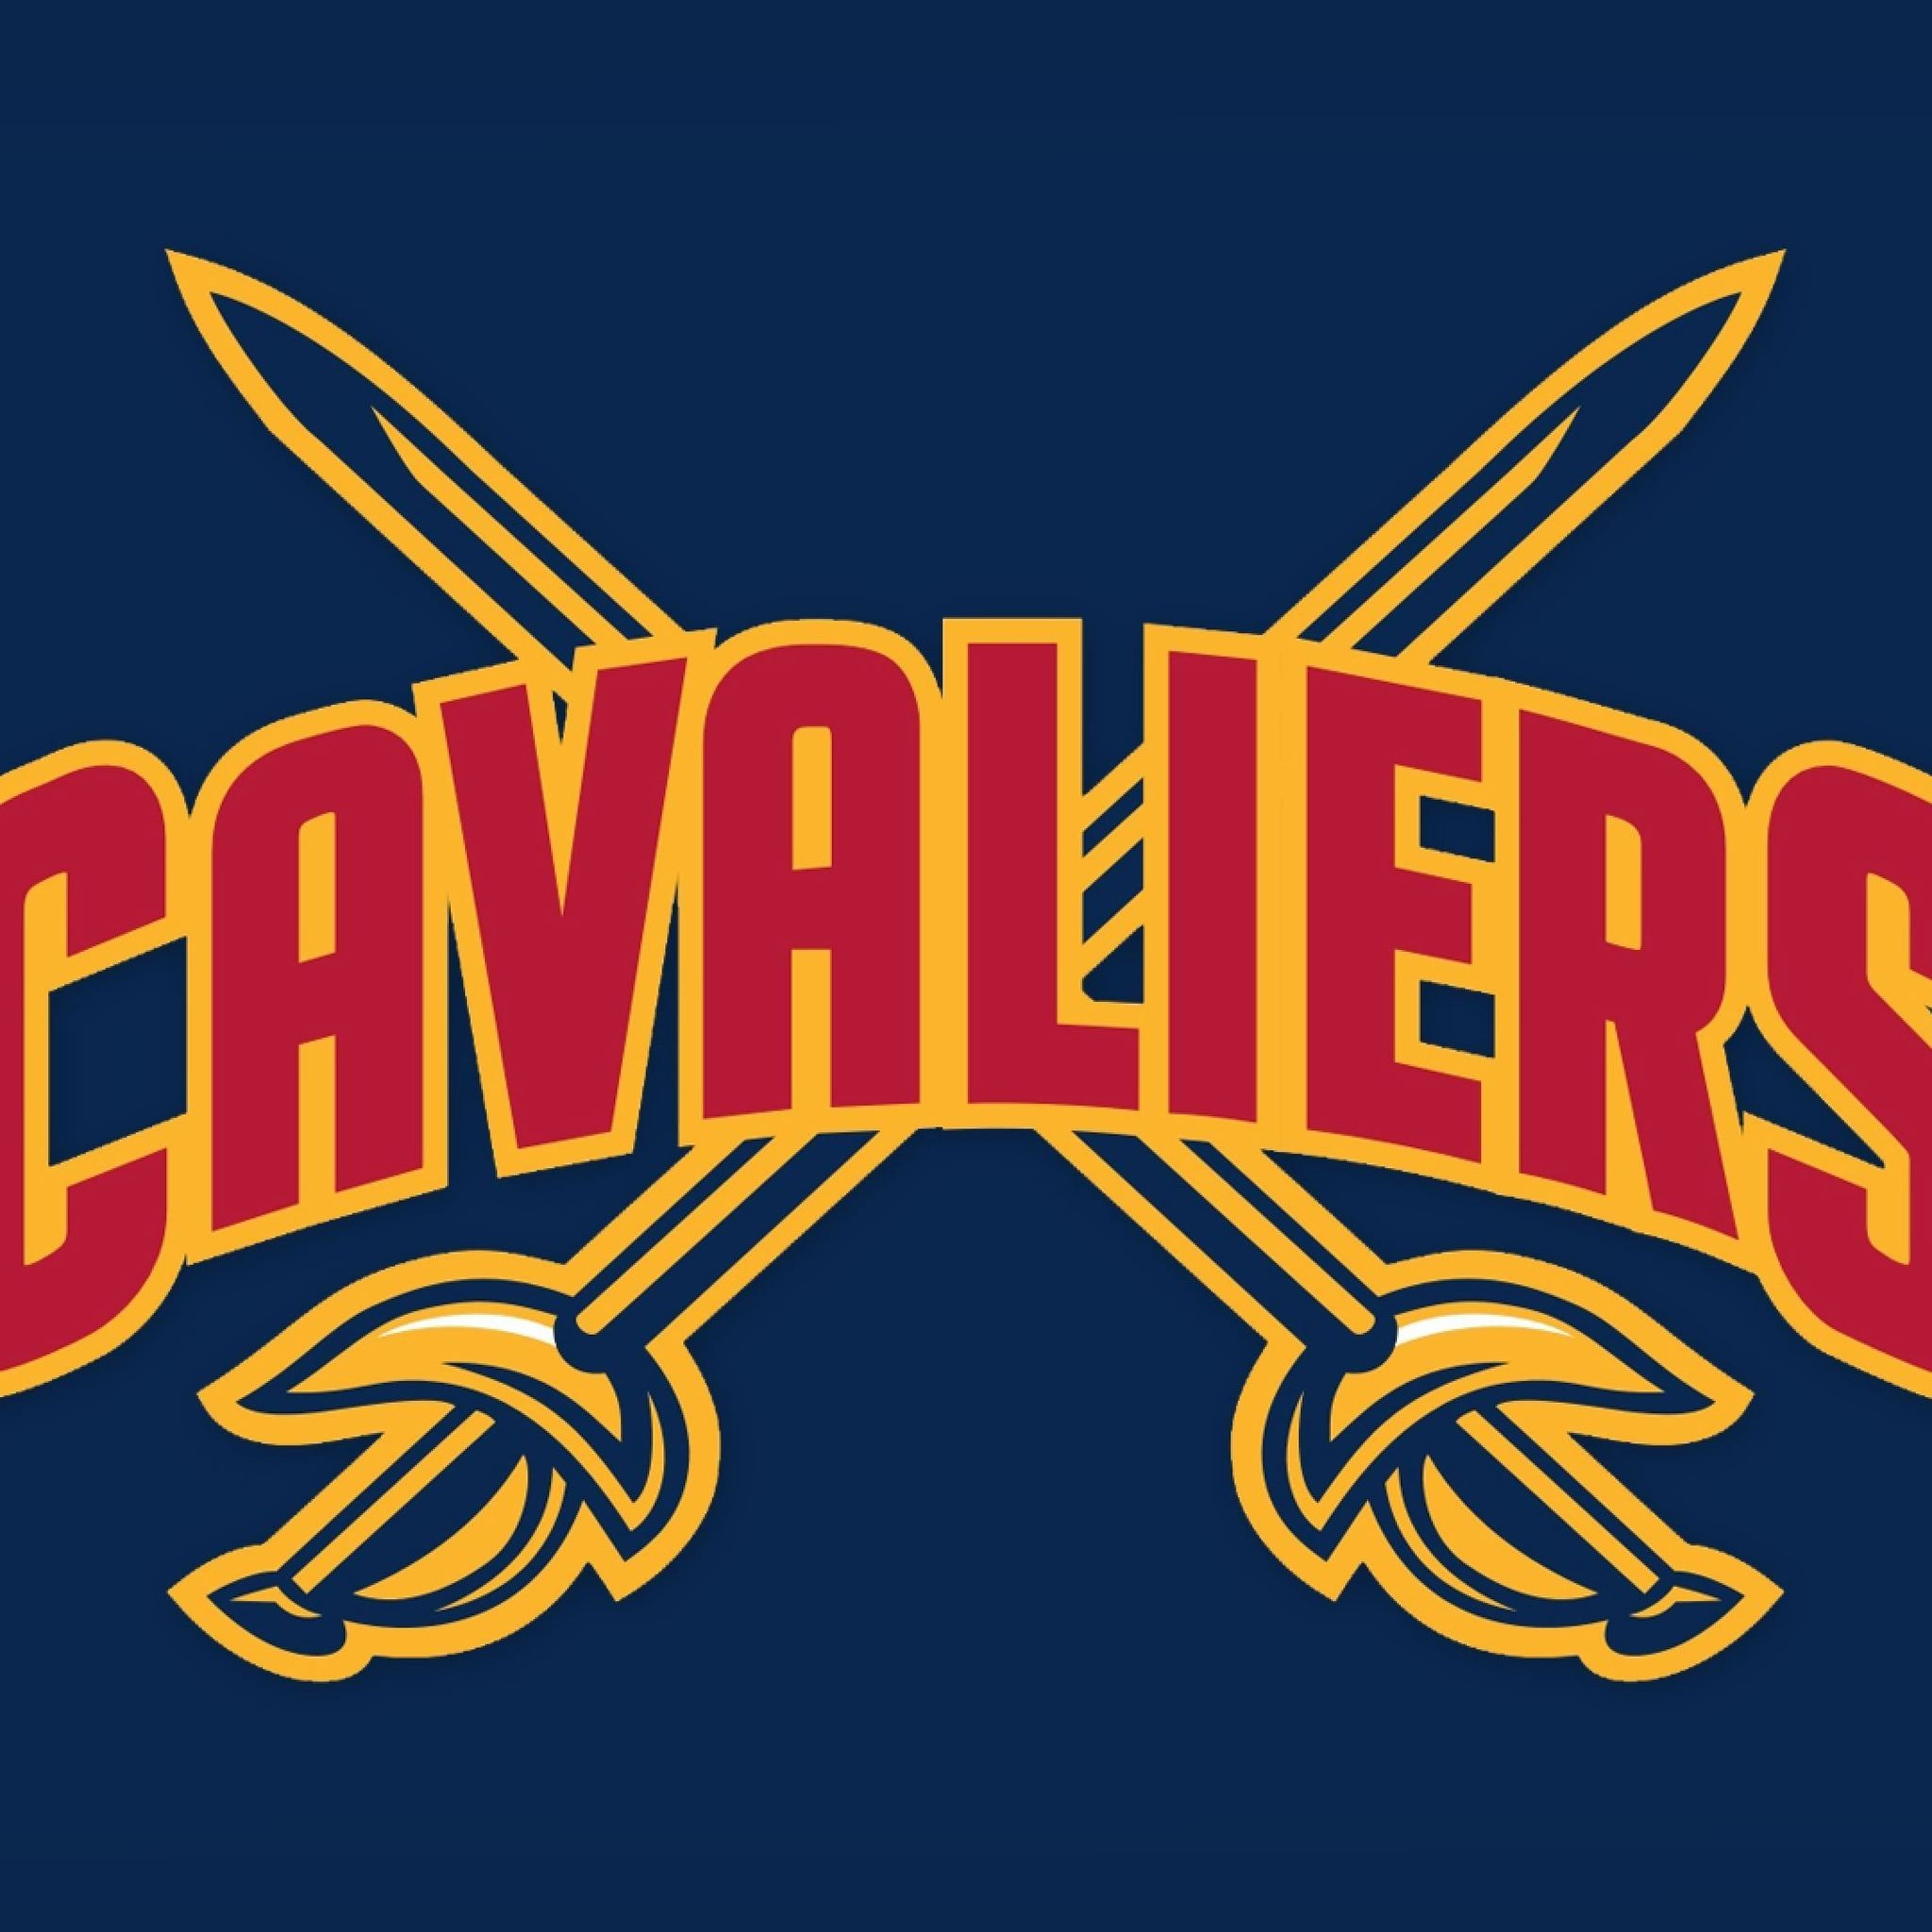 NBA Cleveland Cavaliers Logo for 2048 x 2048 New iPad resolution